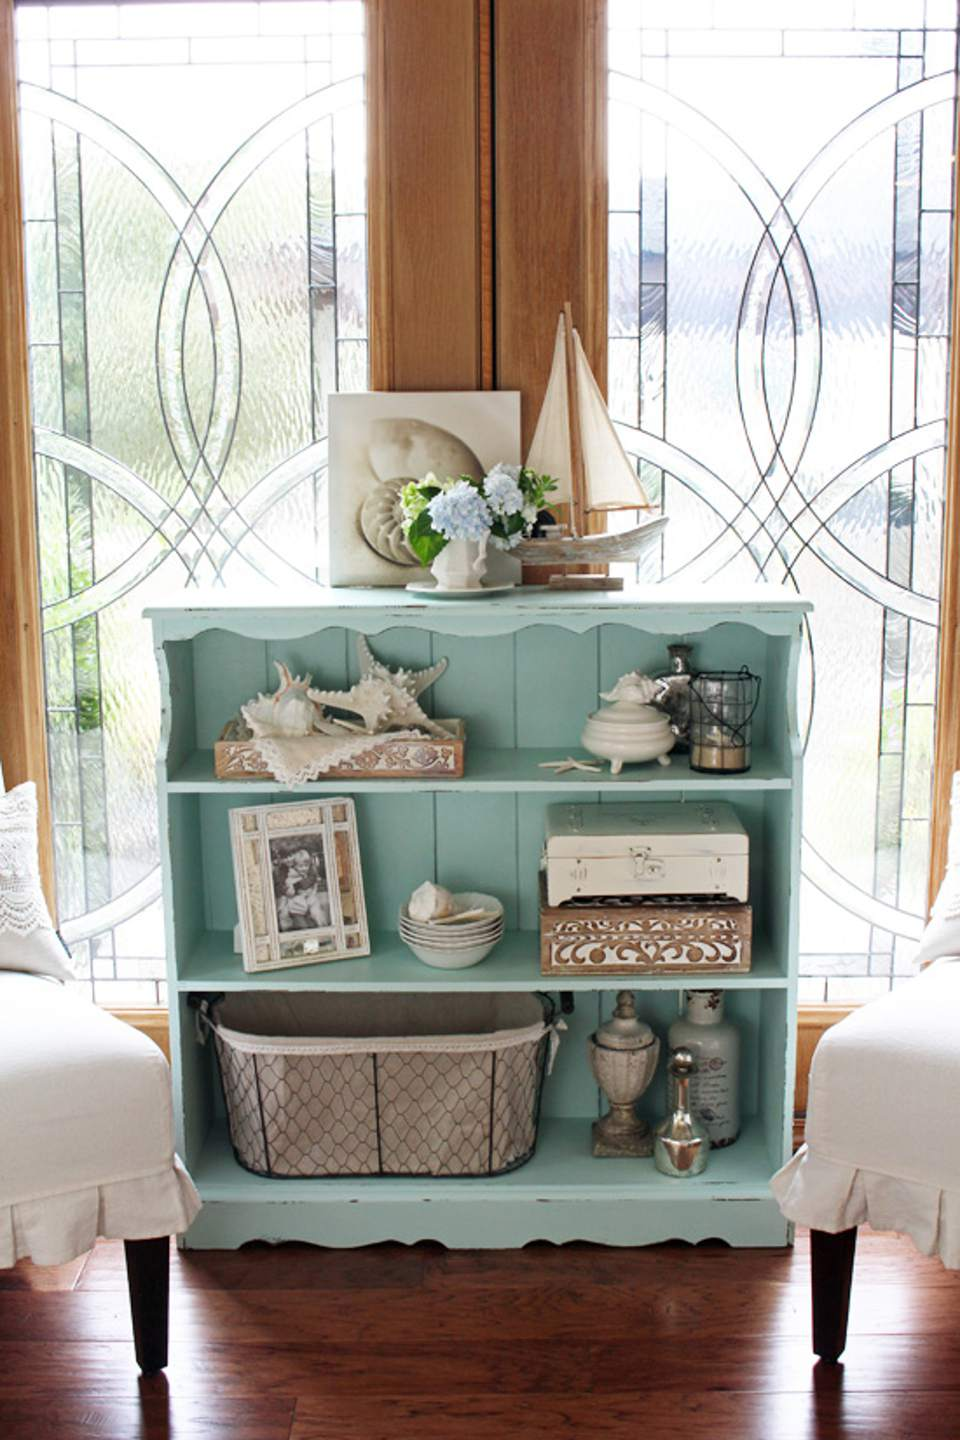 and changed am homemaker be tutorial i afternoon build a diy suit easy simple you this to built in do an wanna bookcase can